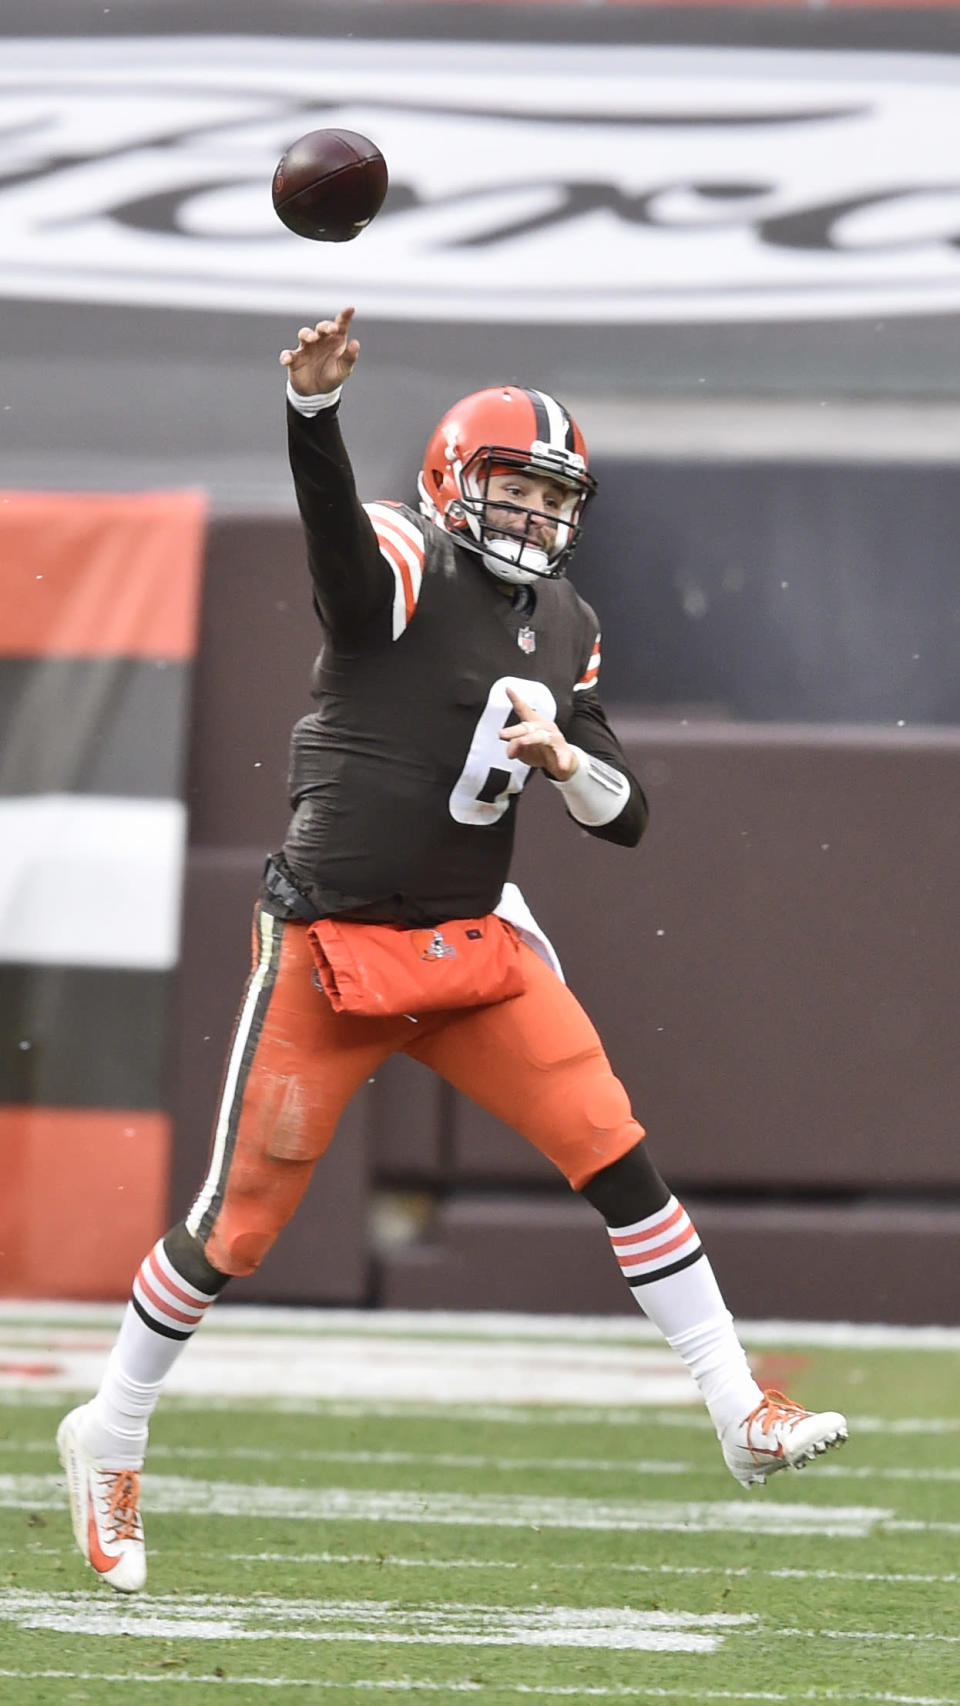 Cleveland Browns quarterback Baker Mayfield throws during the first half of an NFL football game against the Las Vegas Raiders, Sunday, Nov. 1, 2020, in Cleveland. (AP Photo/David Richard)